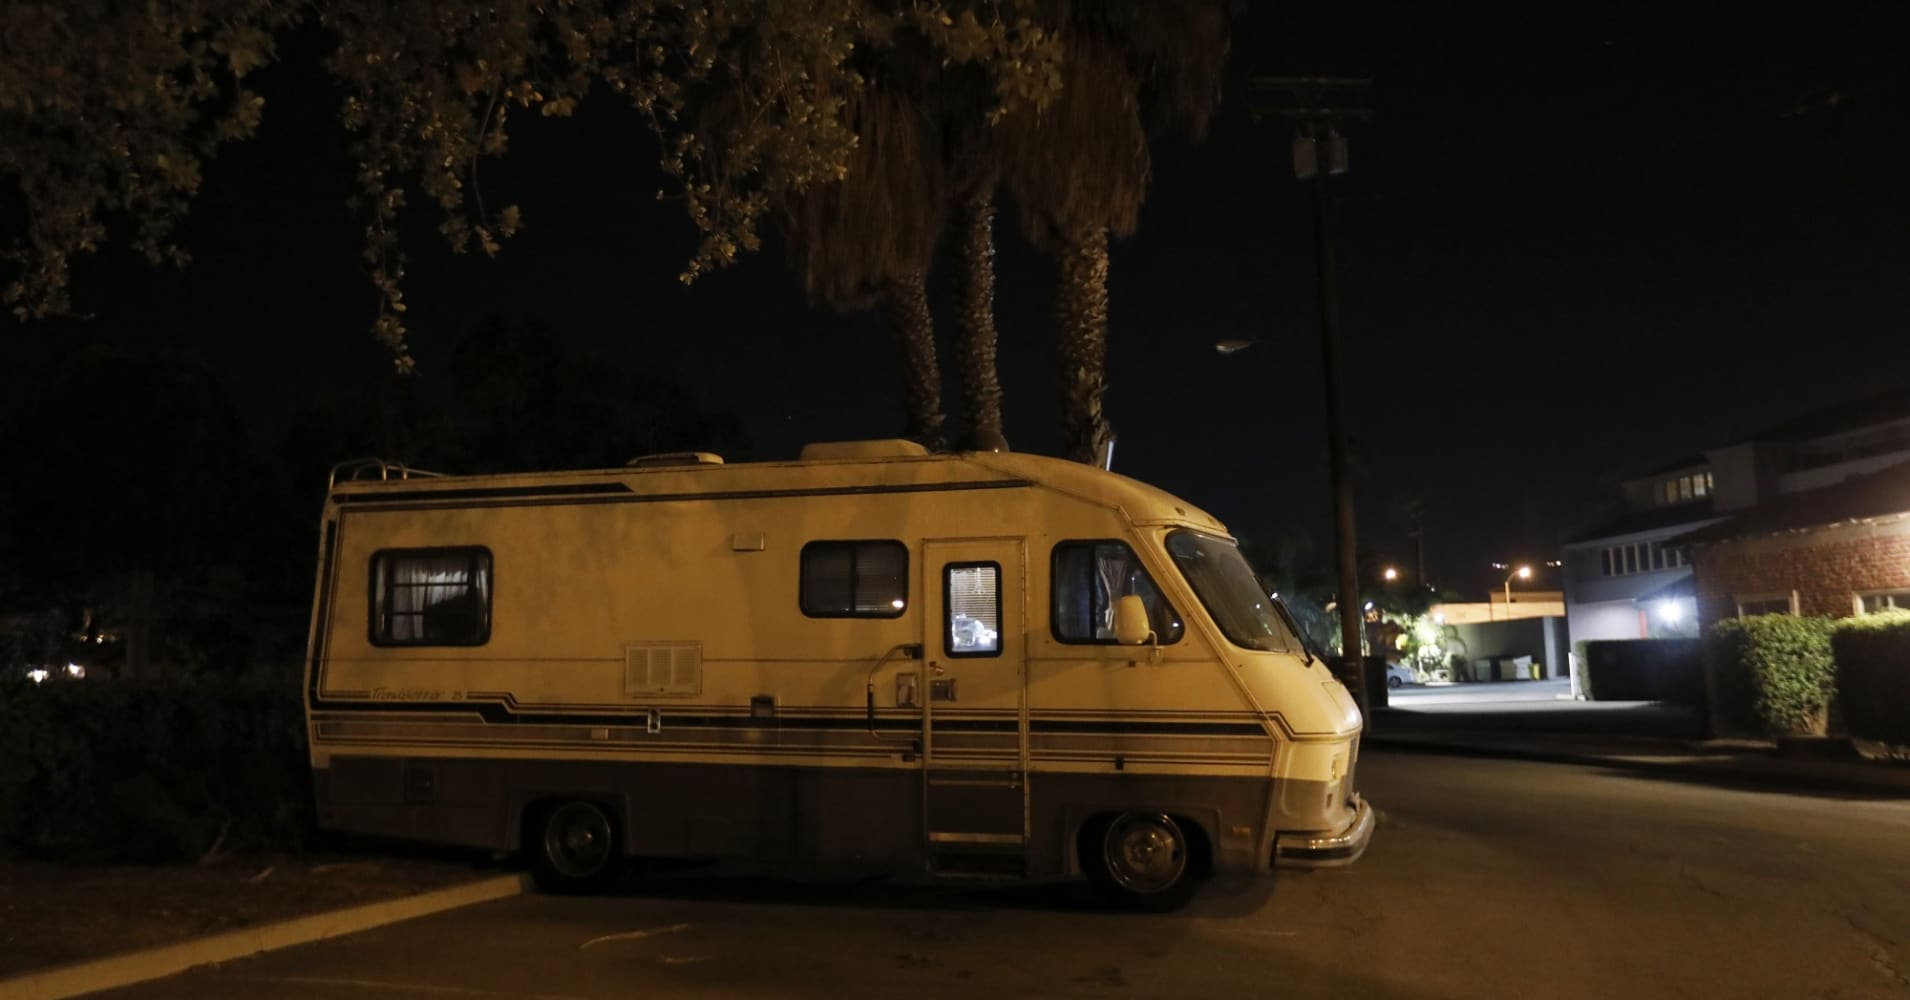 Kathy, 65, and Phil, 74, live together in this RV along with their aging Standard Poodle in a parking lot on December 18, 2017 in Santa Barbara, California. She currently works part time in Santa Barbara and struggles financially. She says she spent her career working as a paralegal and was a homeowner.